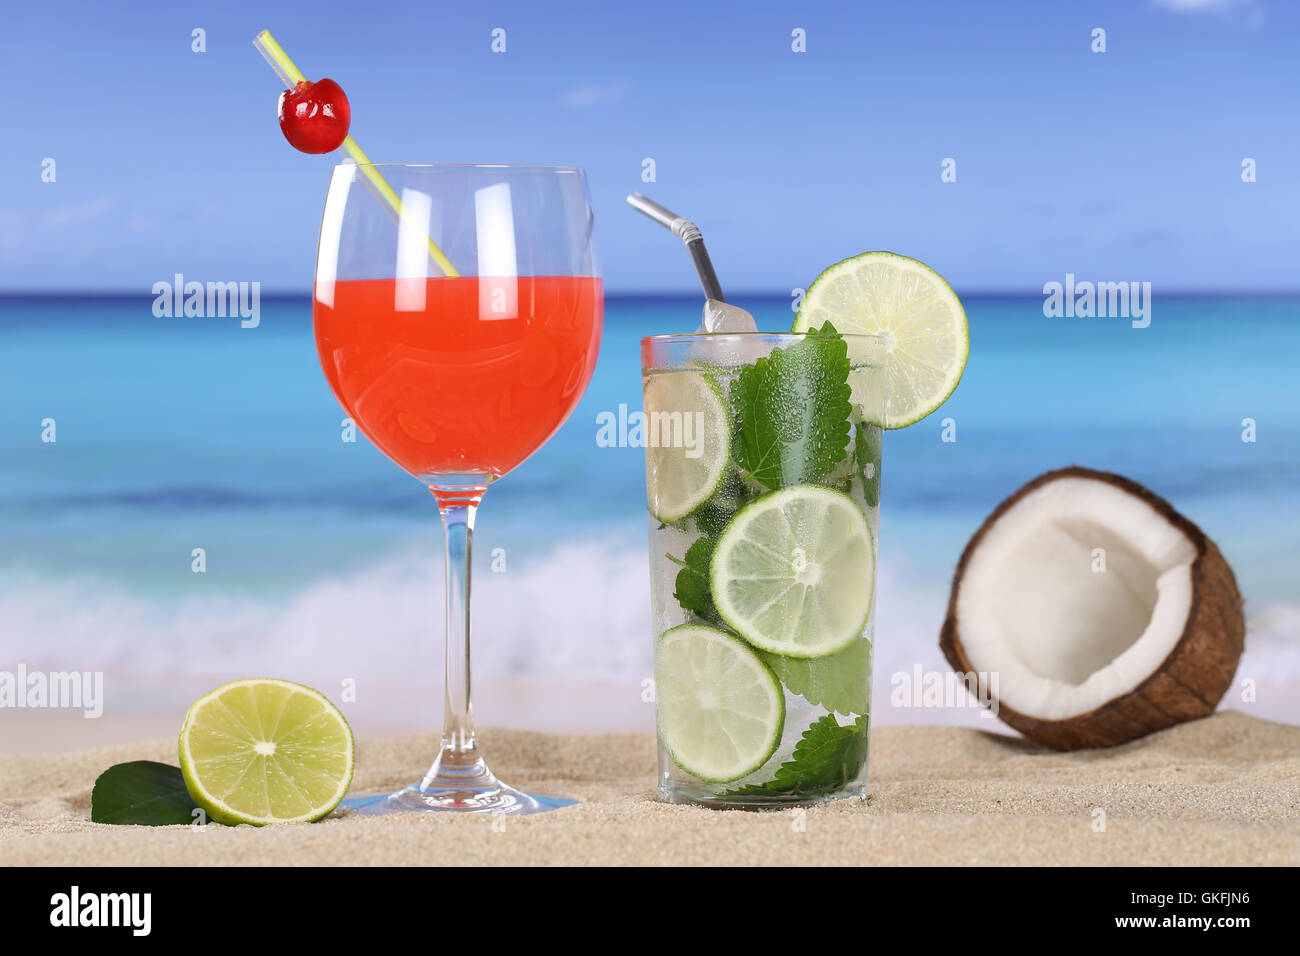 cocktails and drinks on the beach with sand and sea - Stock Image